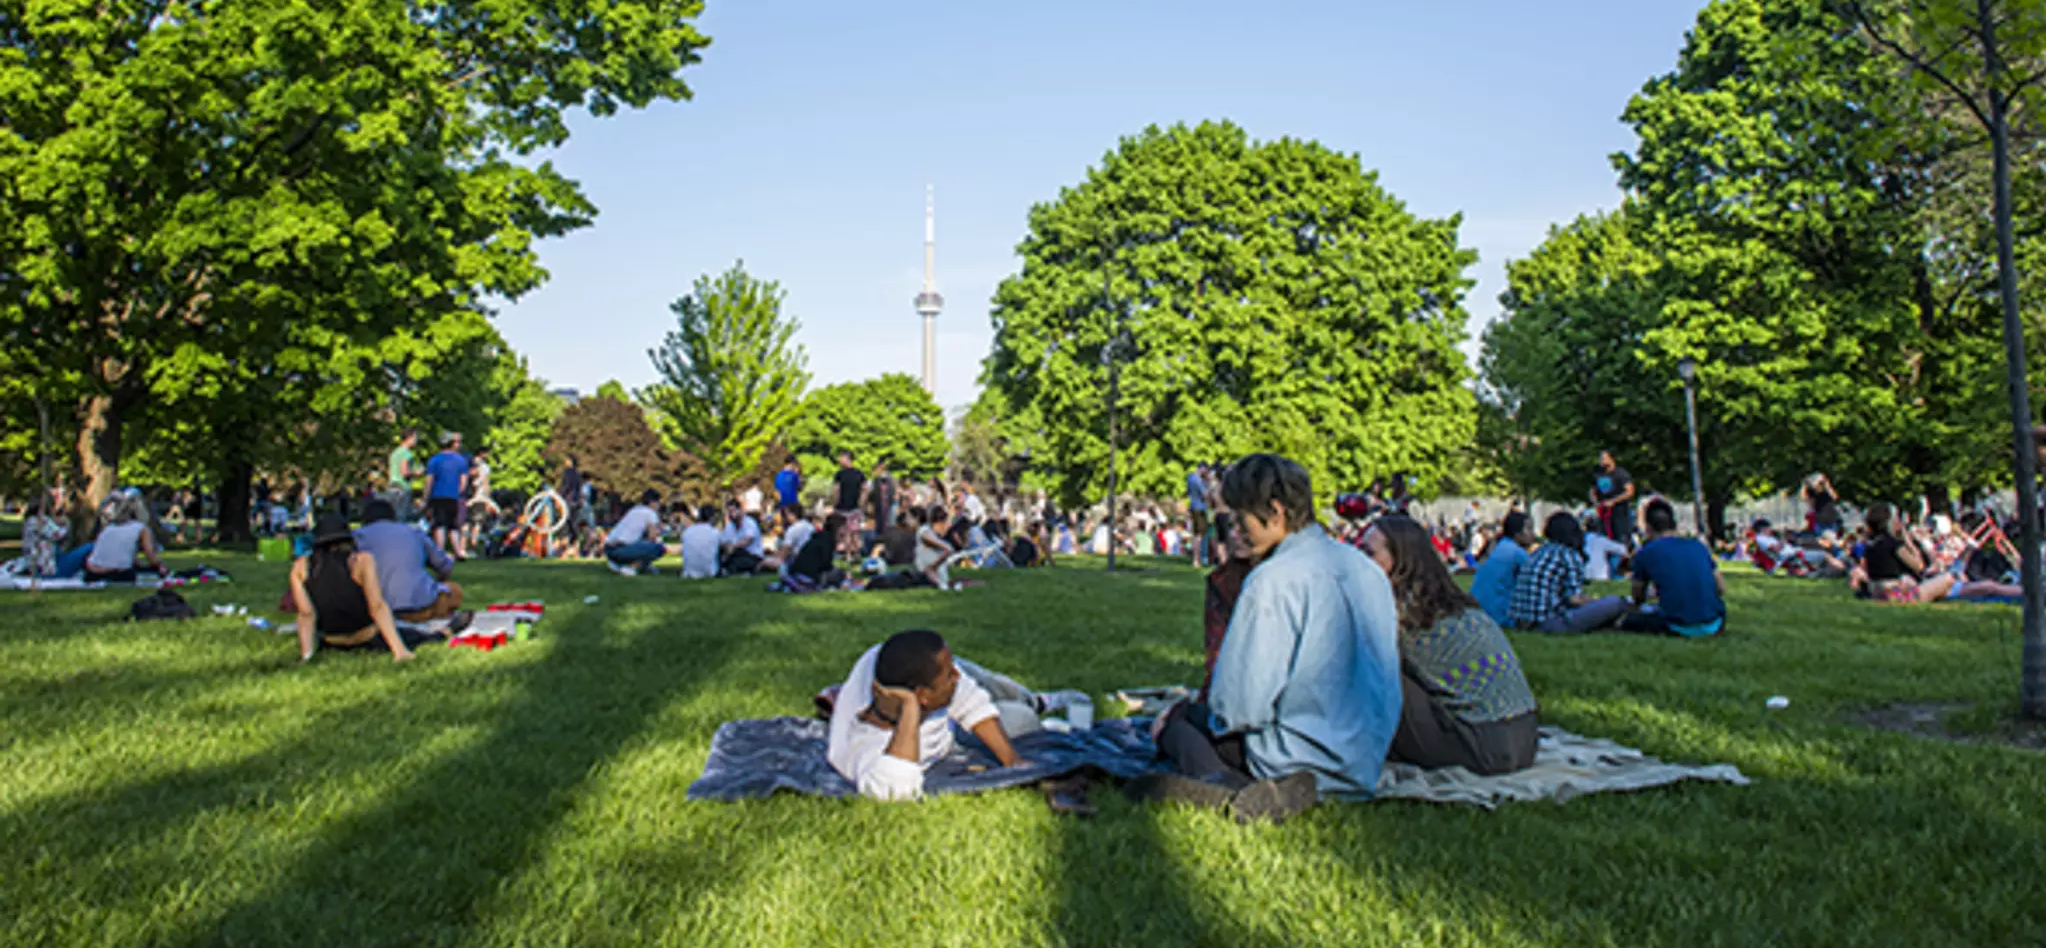 Toronto residents enjoy summer afternoon in park with CN Tower in background